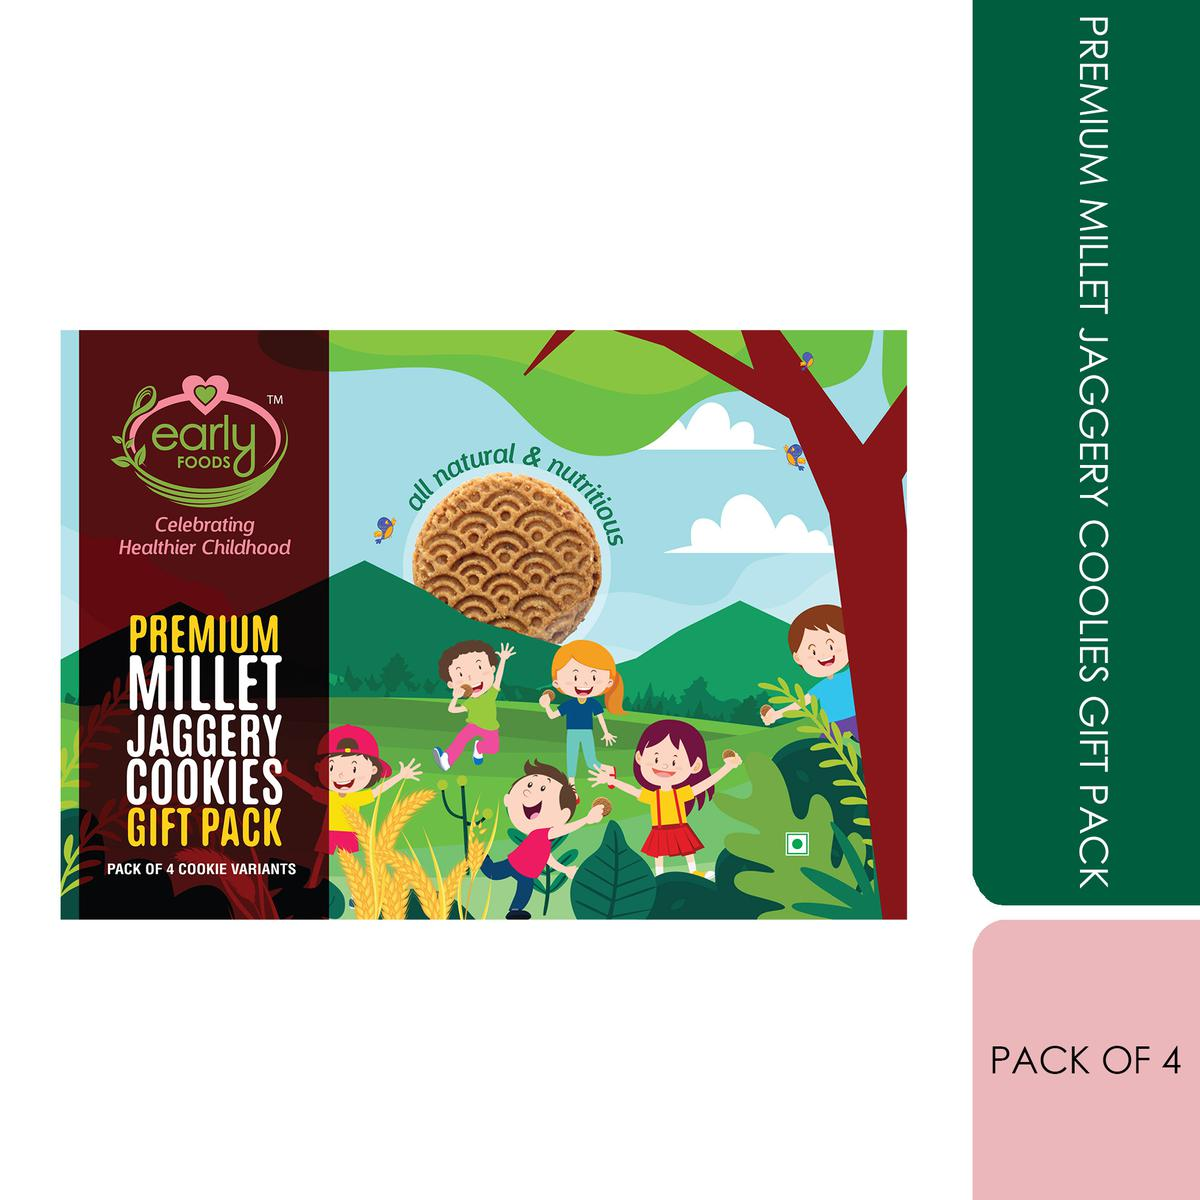 Early Foods - Premium Millet Jaggery Cookies Gift Box